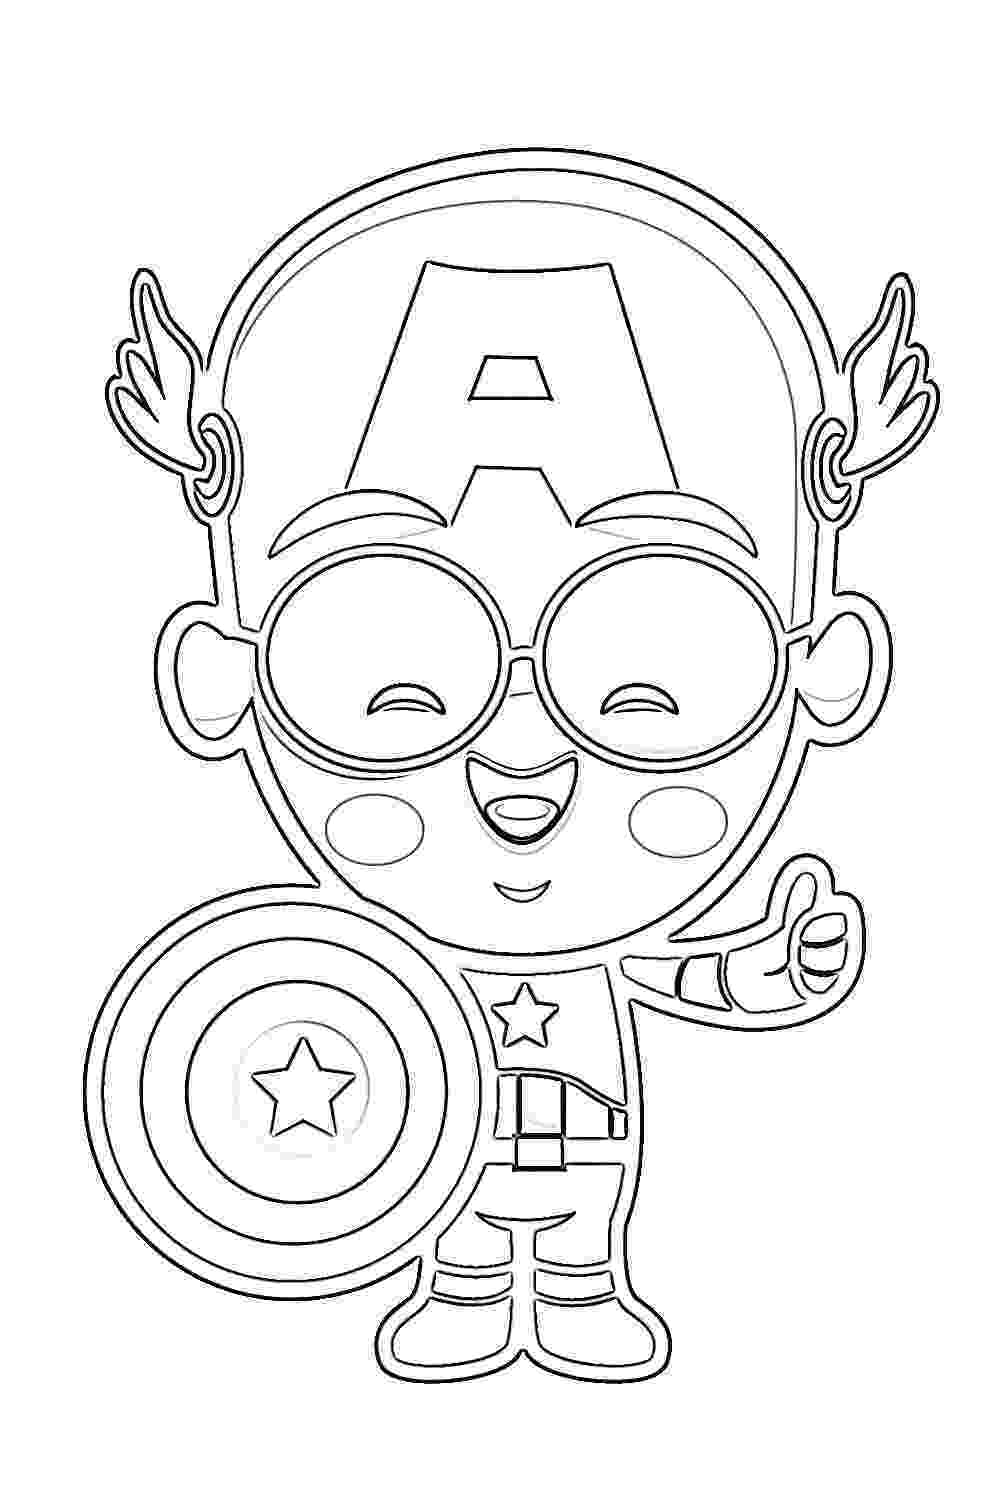 avengers coloring pages to print craftoholic ultimate avengers coloring pages pages avengers print to coloring